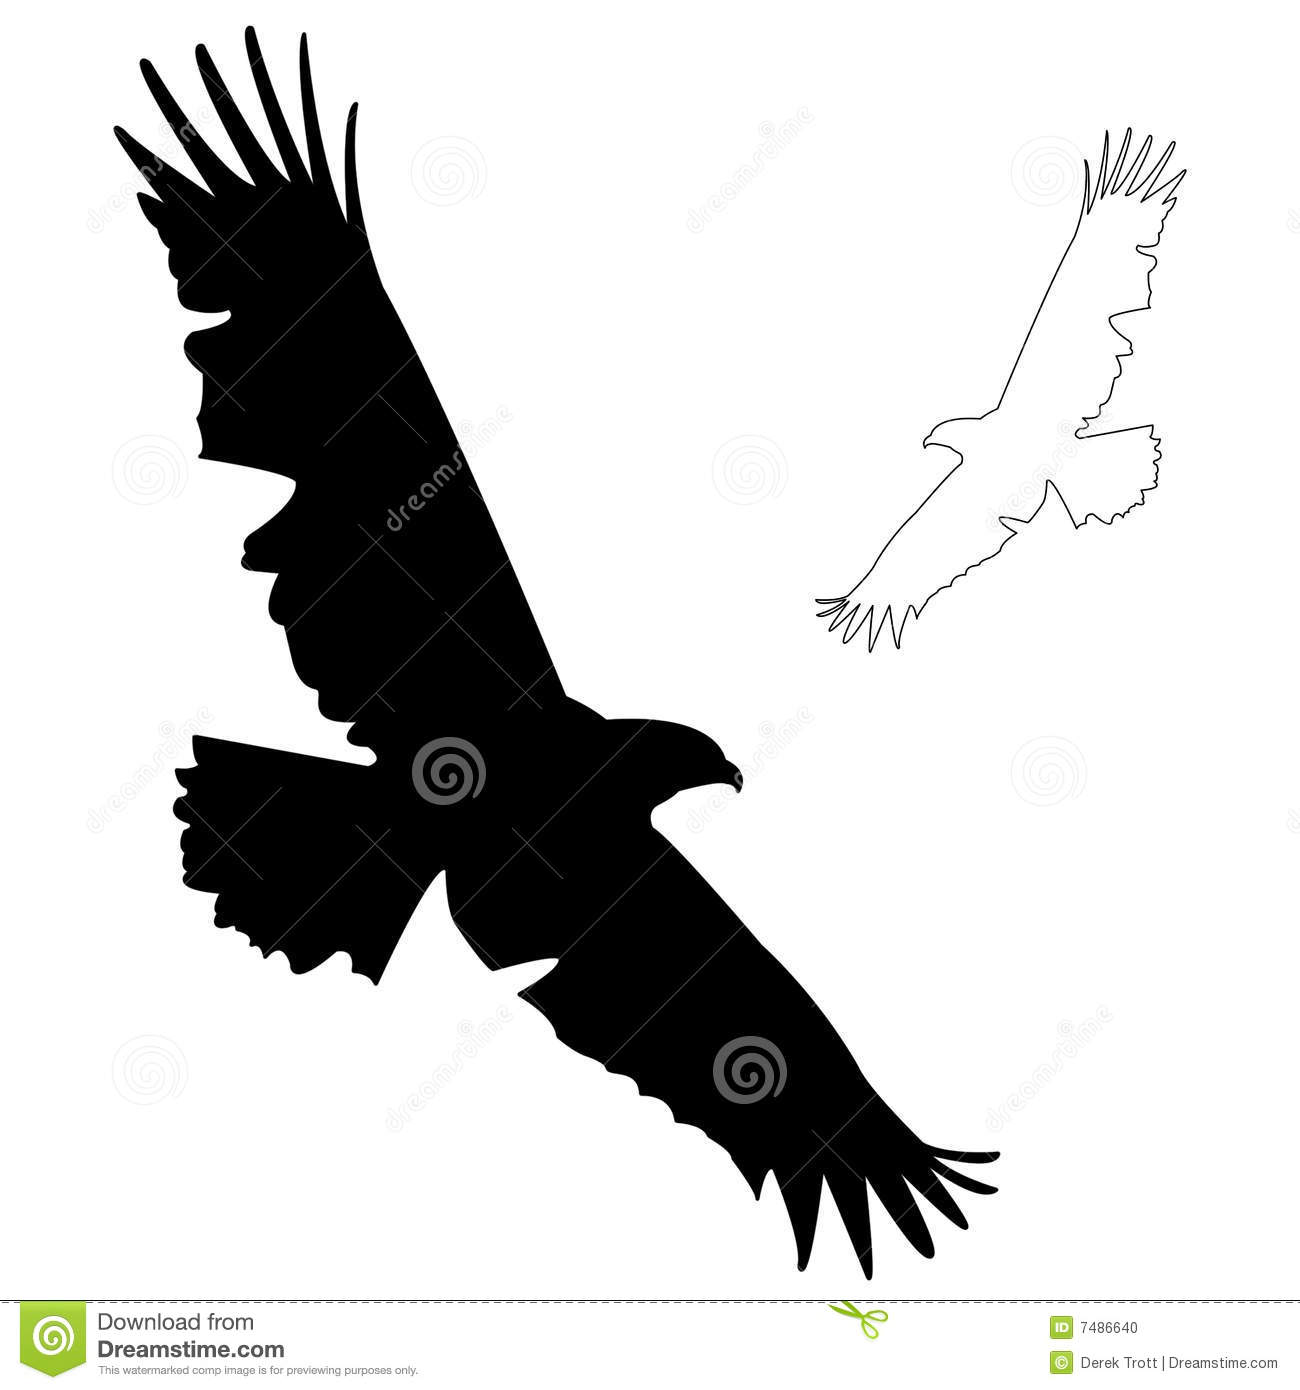 An Eagle silhouette,also with a drawn outline.